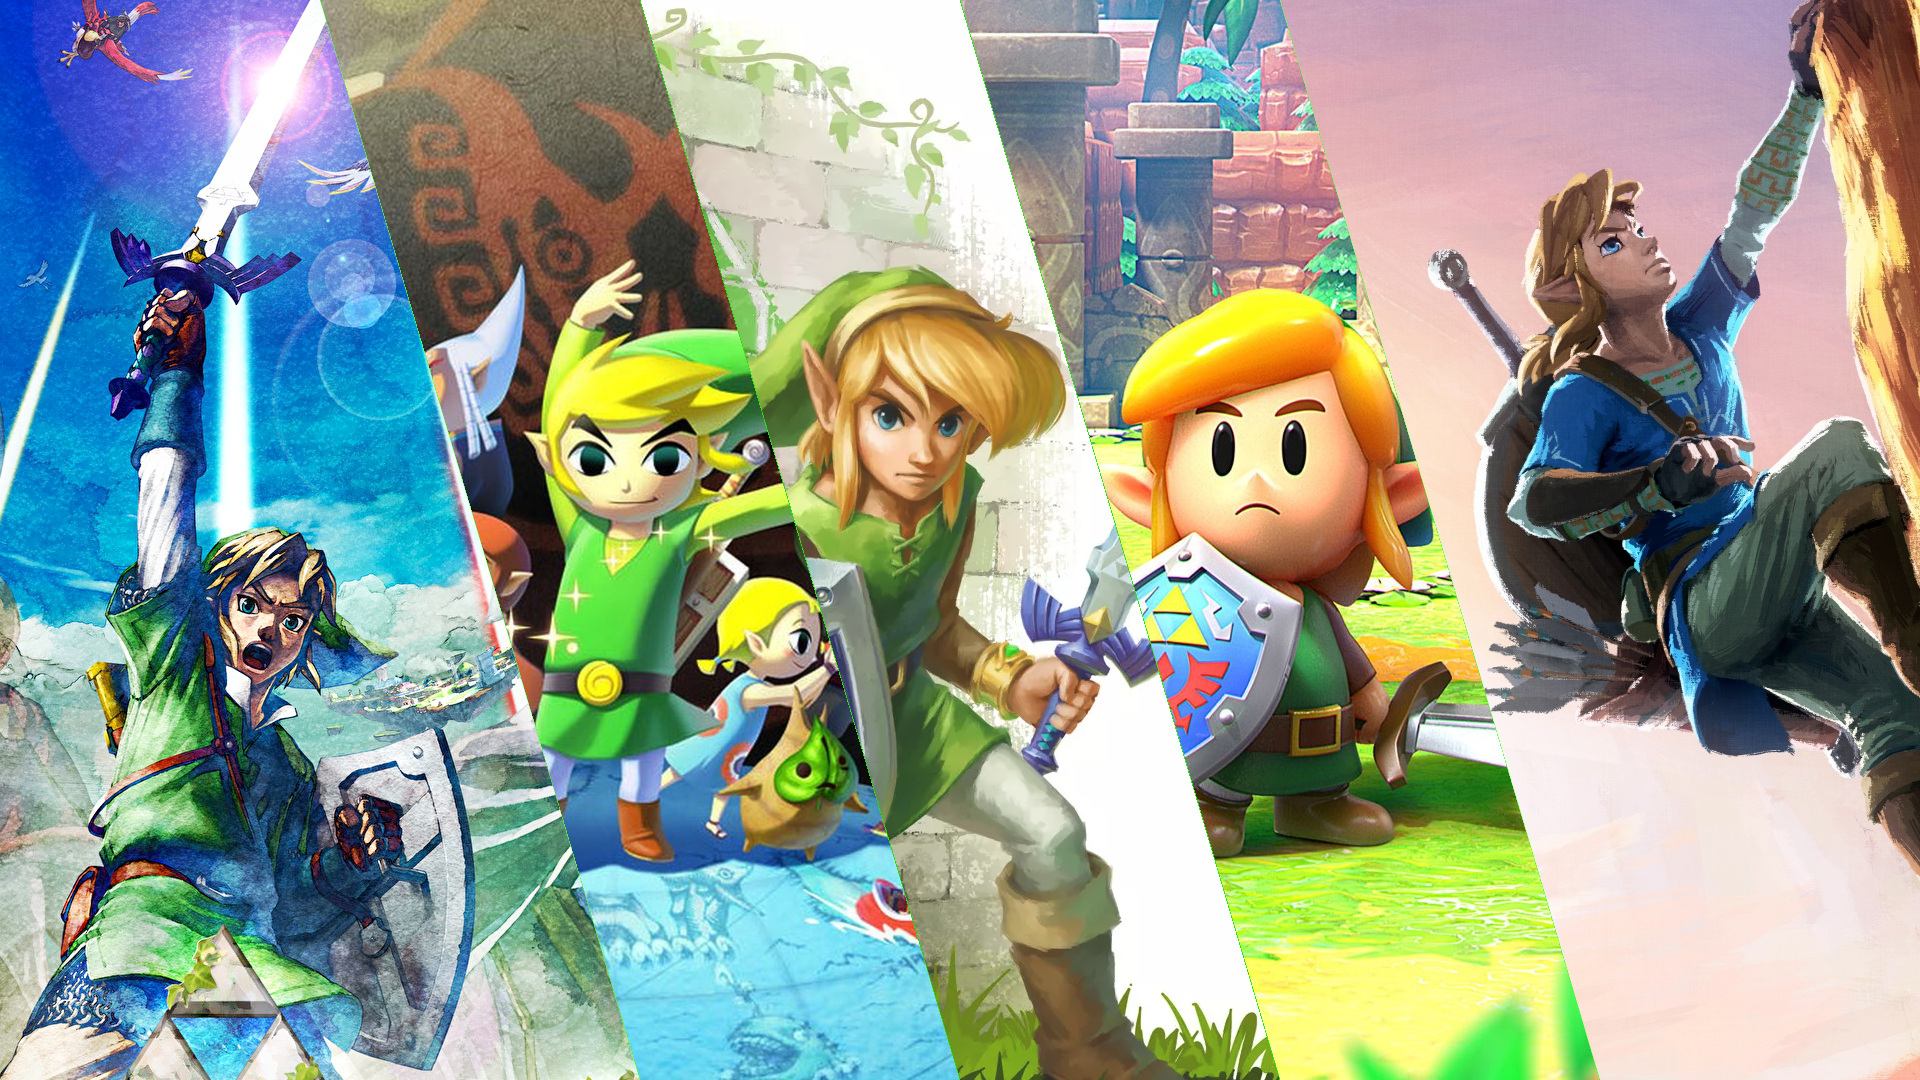 Zelda Dungeon's End of the Decade Awards: The Best & Worst of Zelda, 2010 to 2019